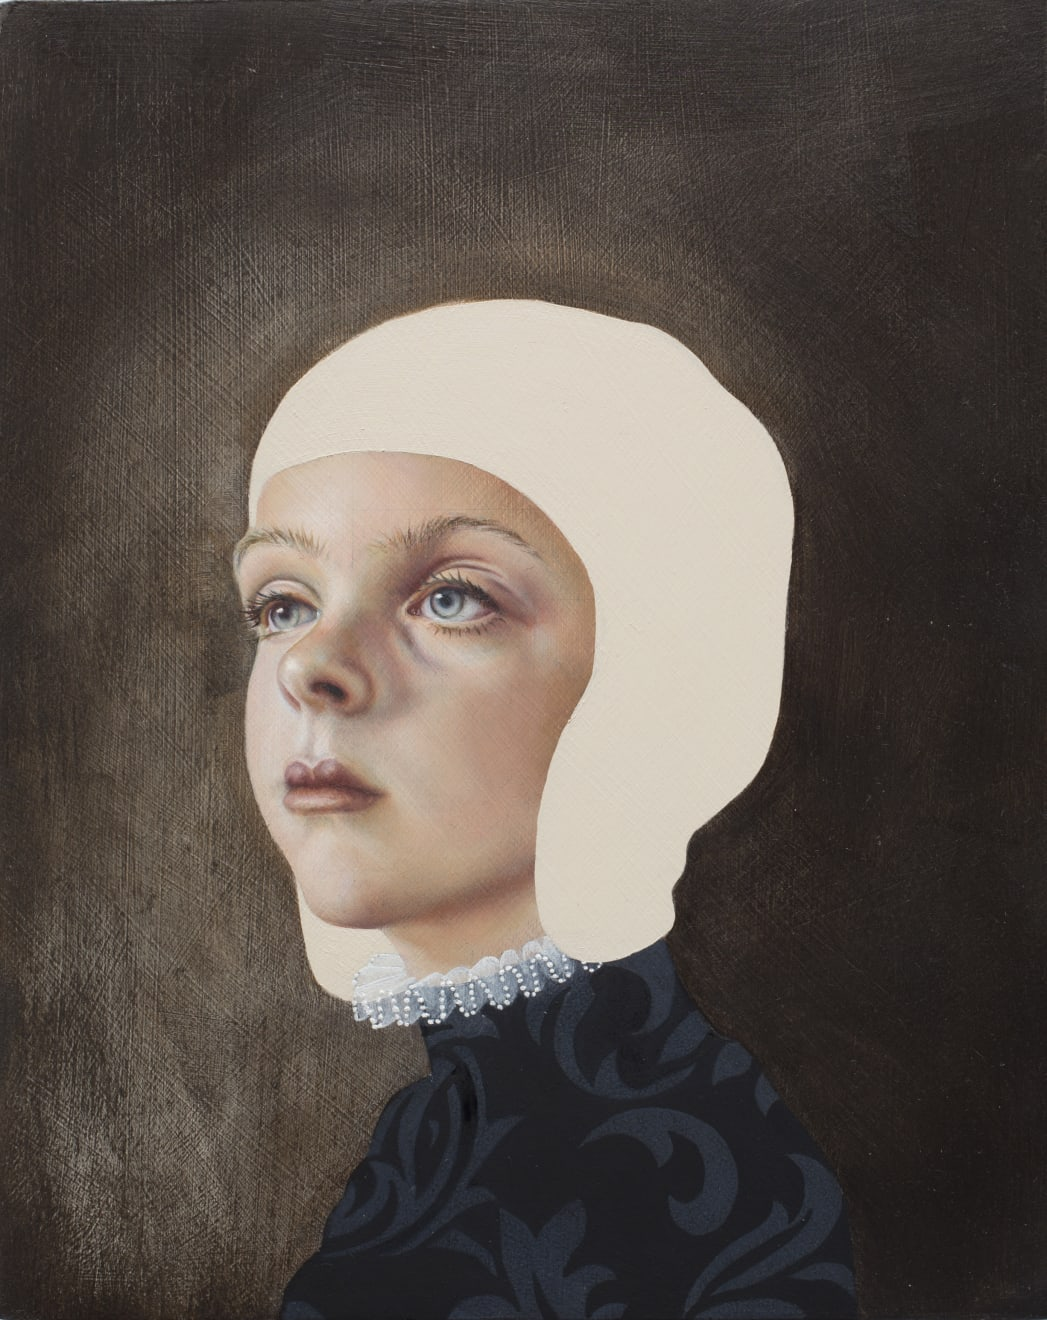 Pippa Young, Self-determined, 2016